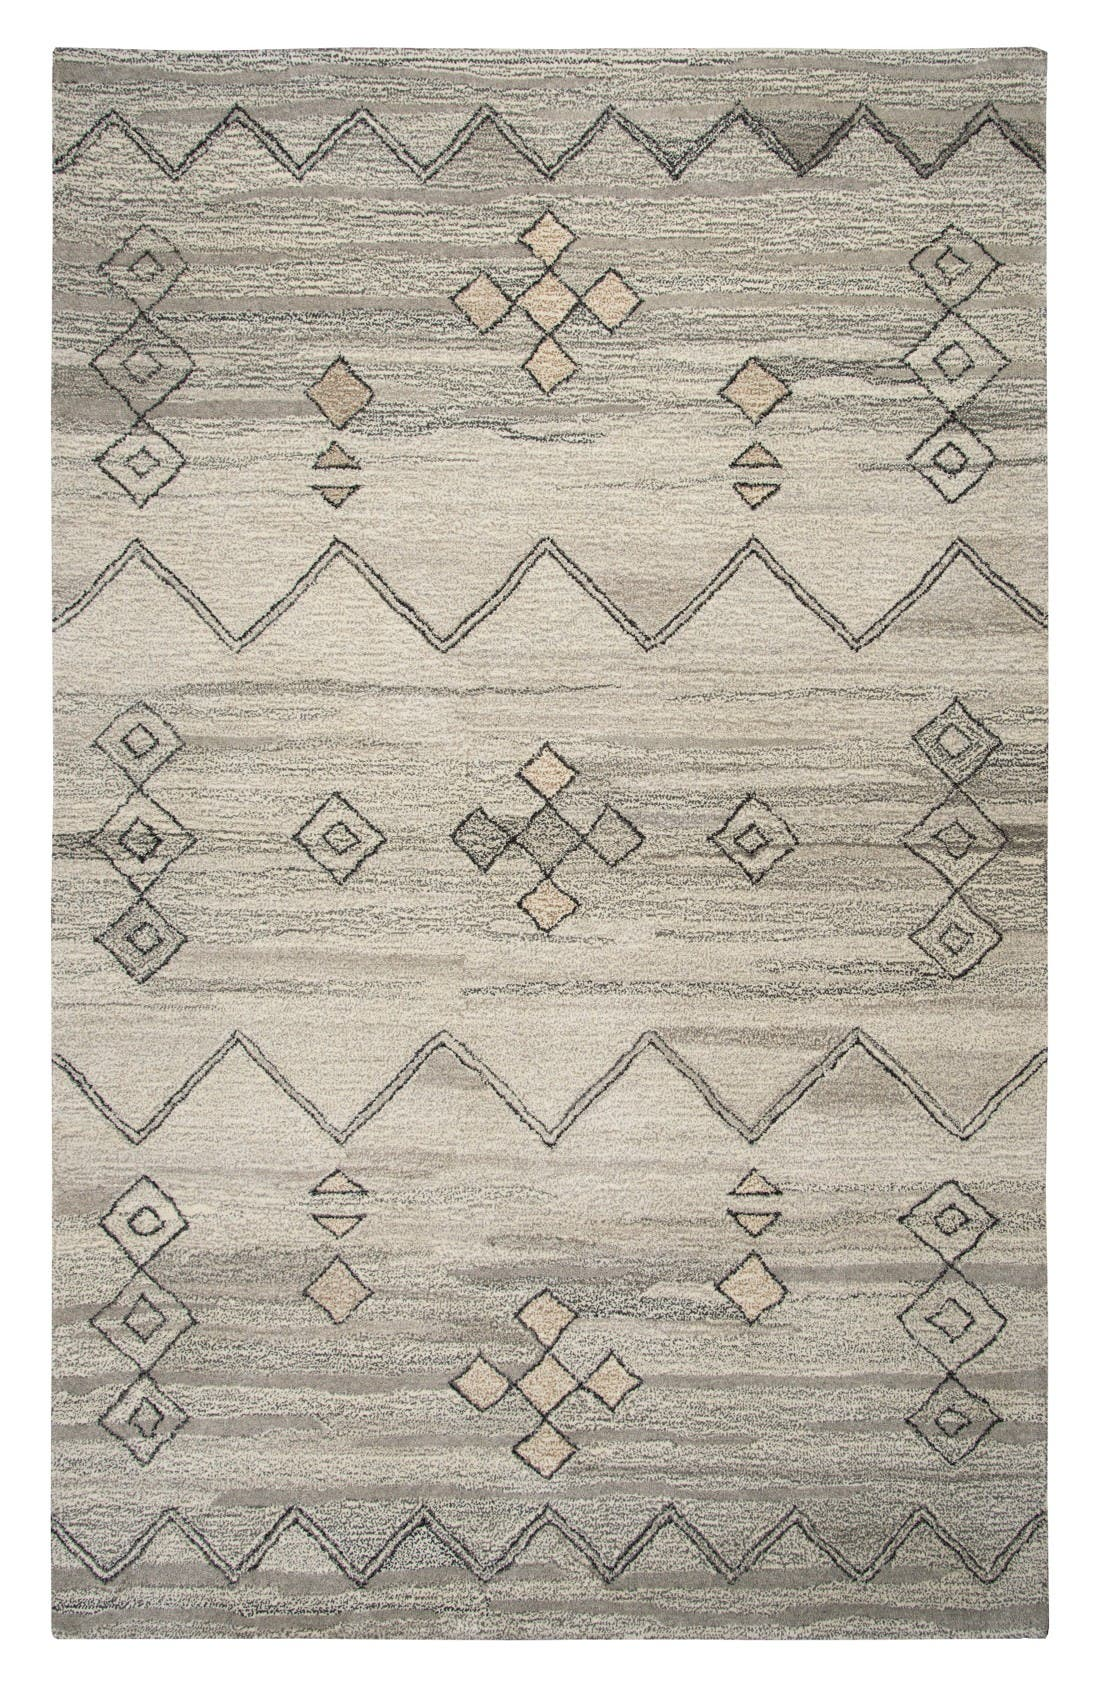 Desert Plains Hand Tufted Wool Area Rug,                             Main thumbnail 1, color,                             Grey